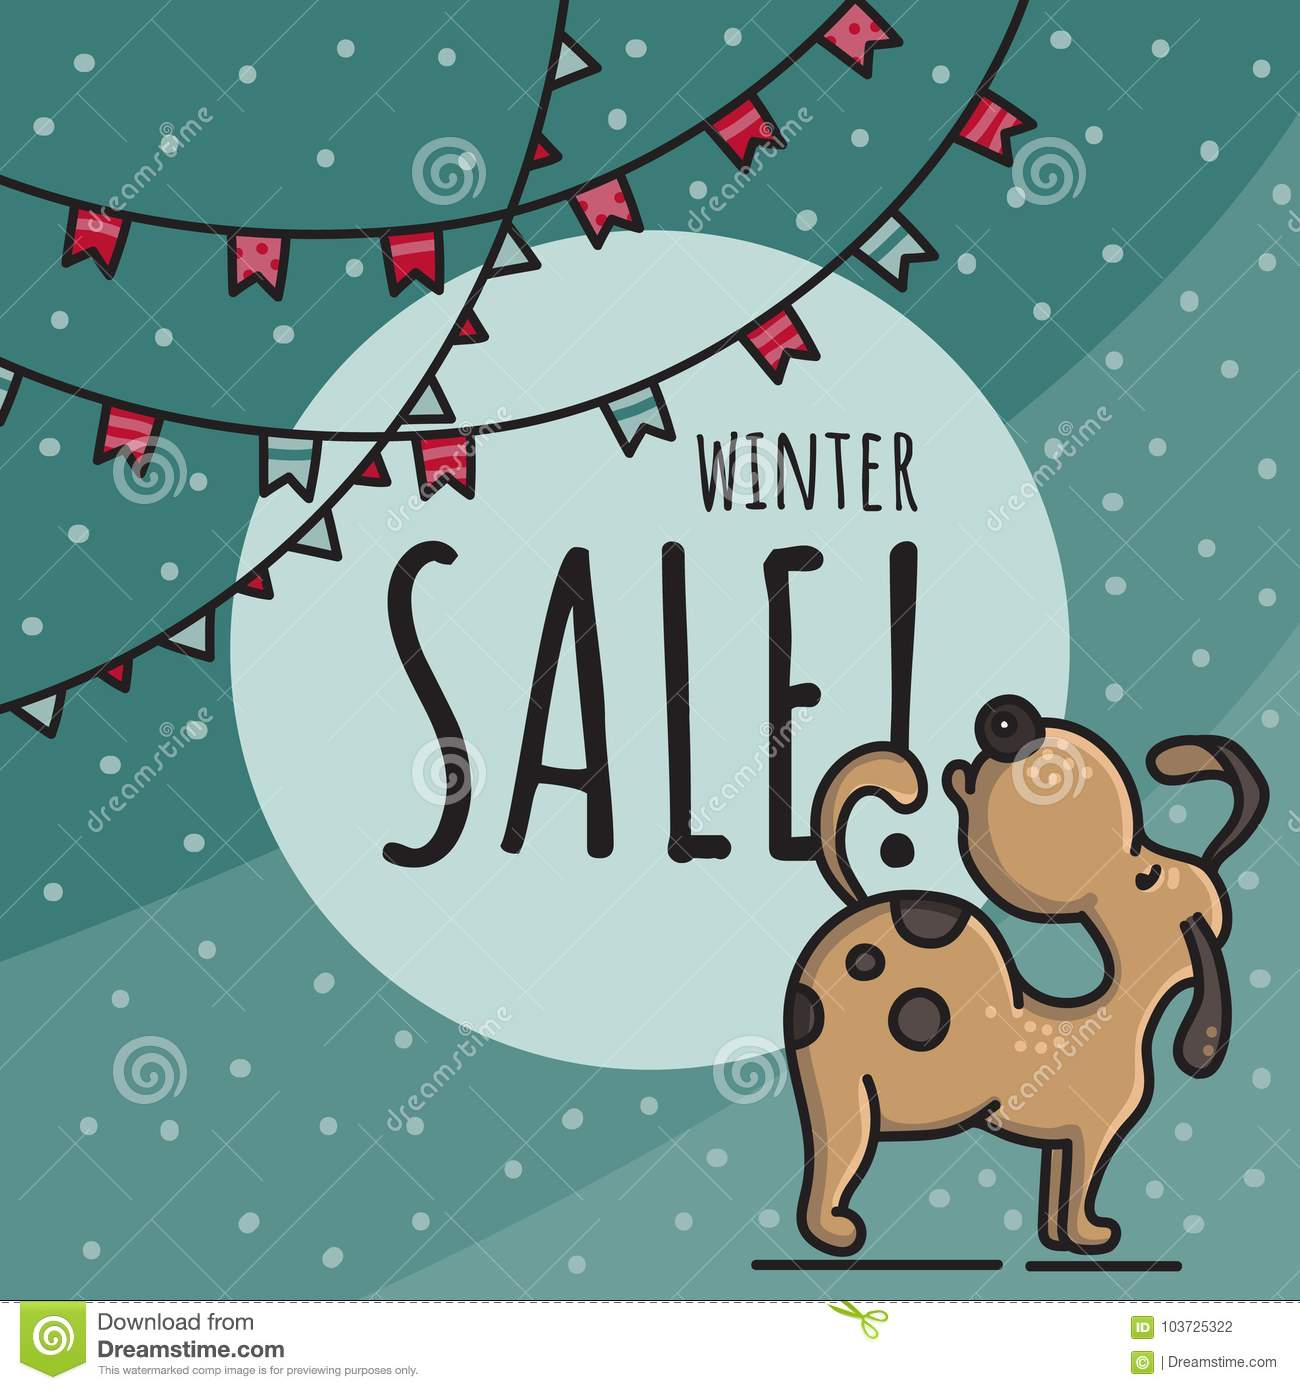 Winter sale hand drawn doodle illustration with dog